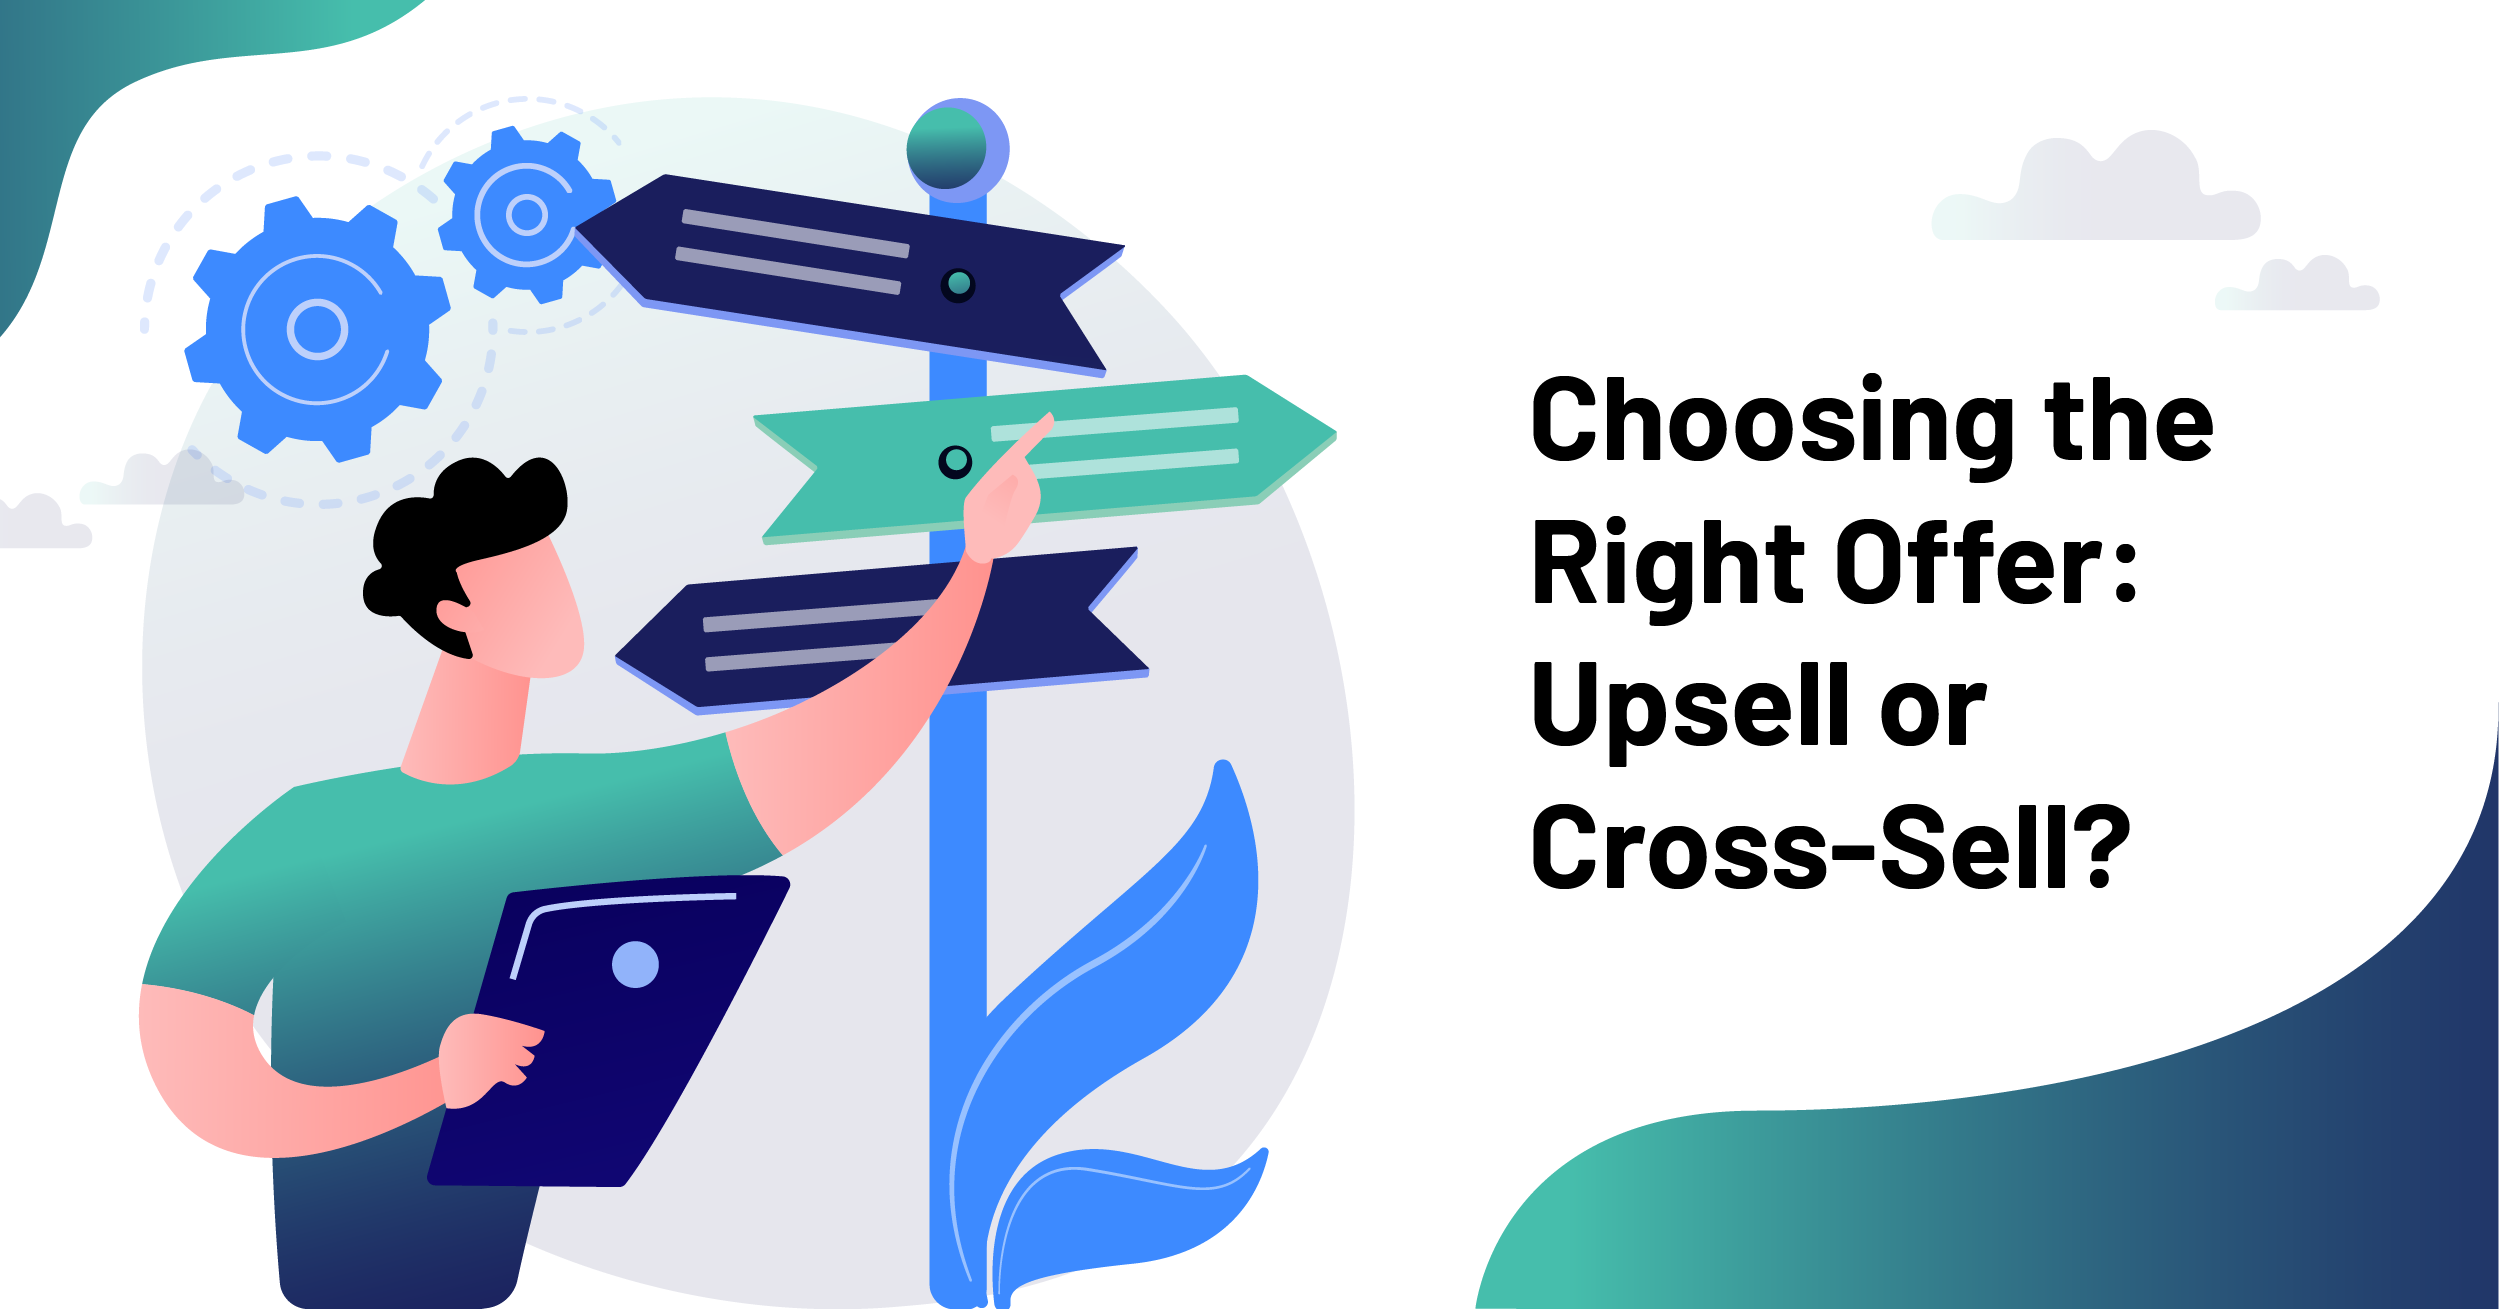 cross sell or upsell